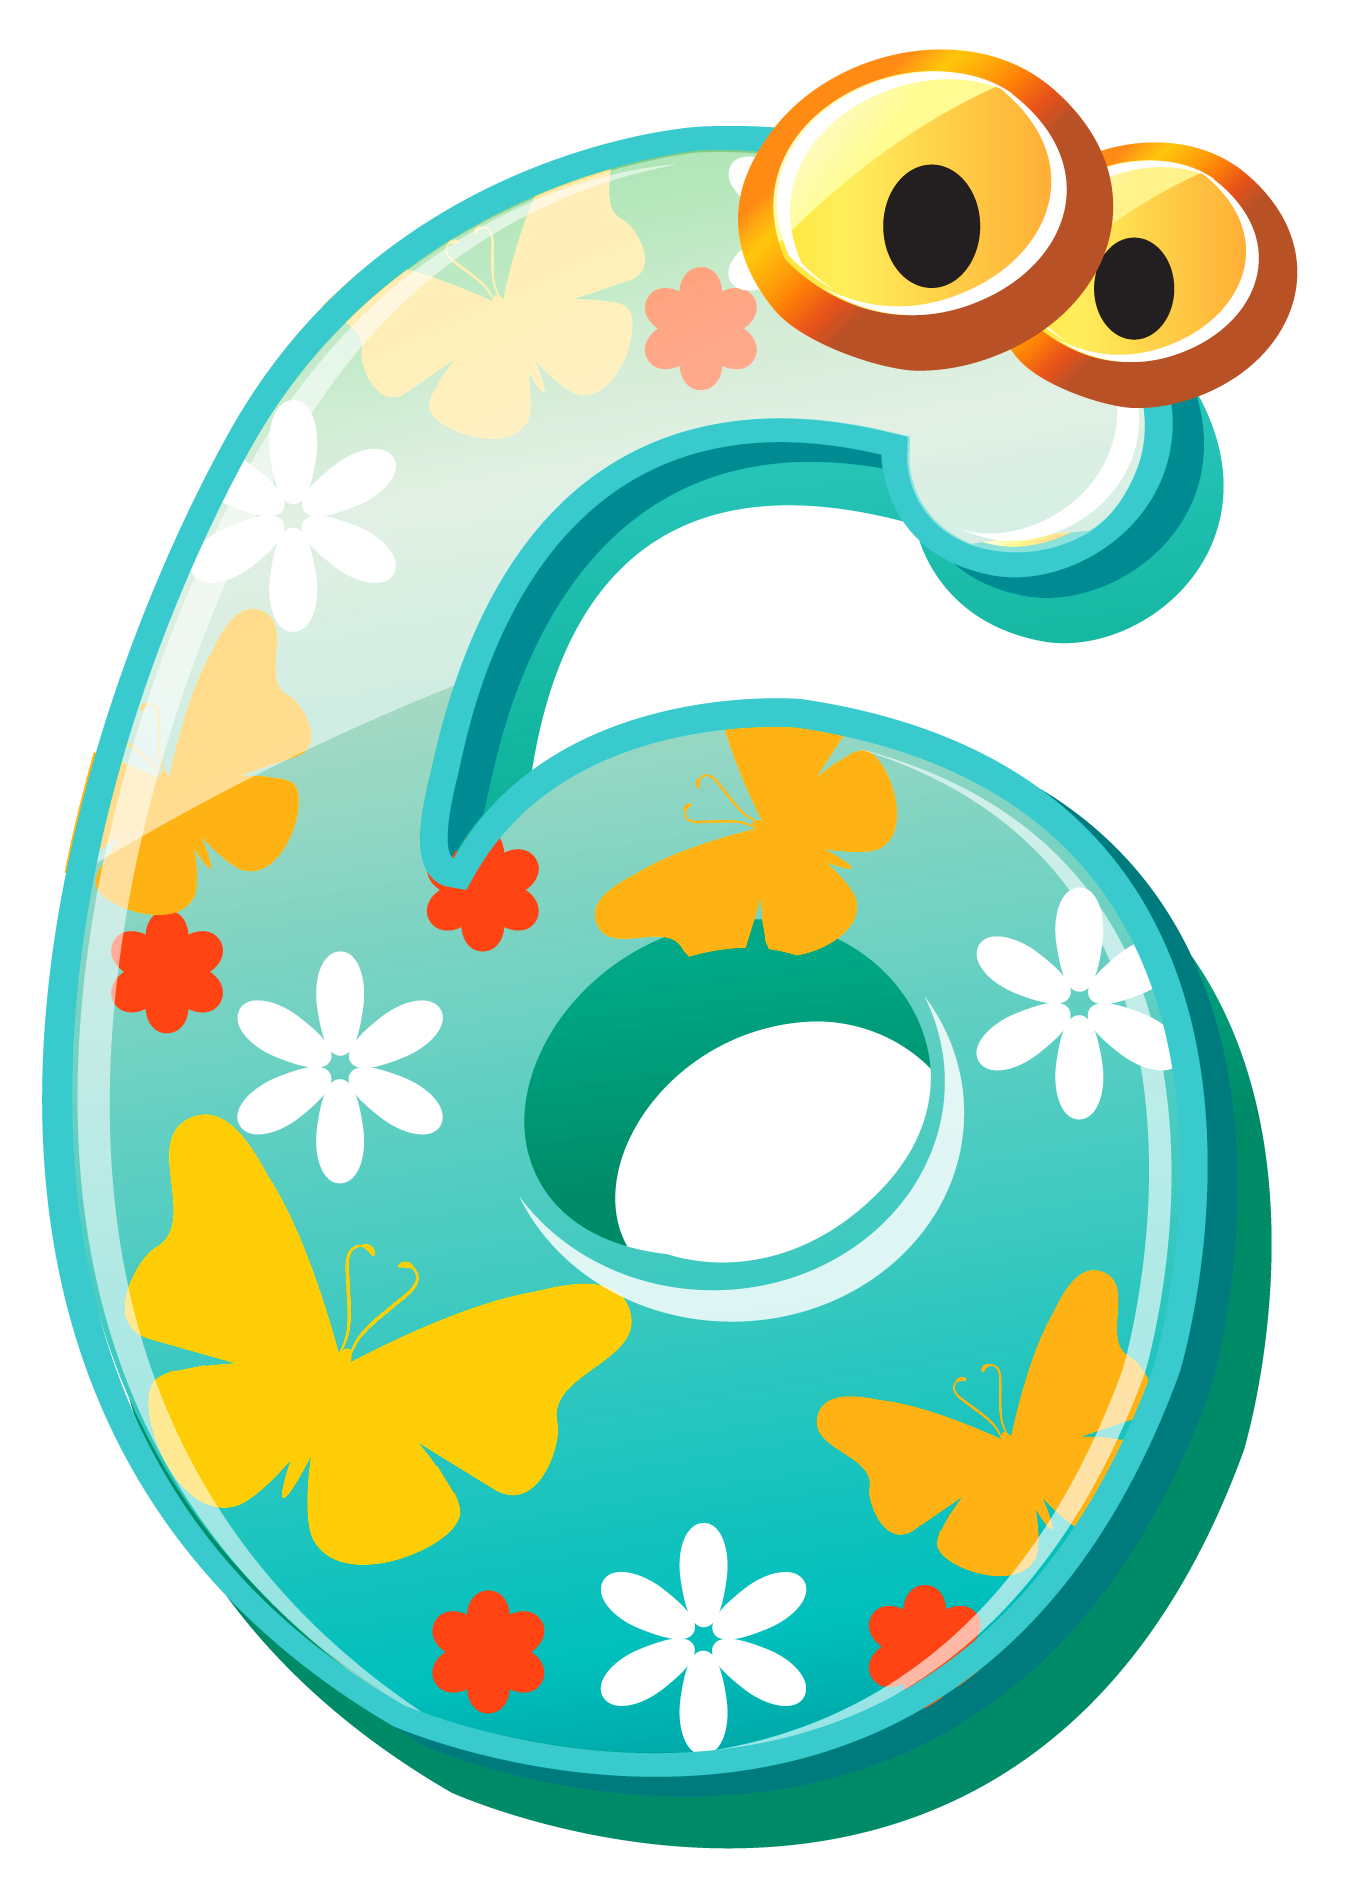 Numbers clip art kids free clipart images image